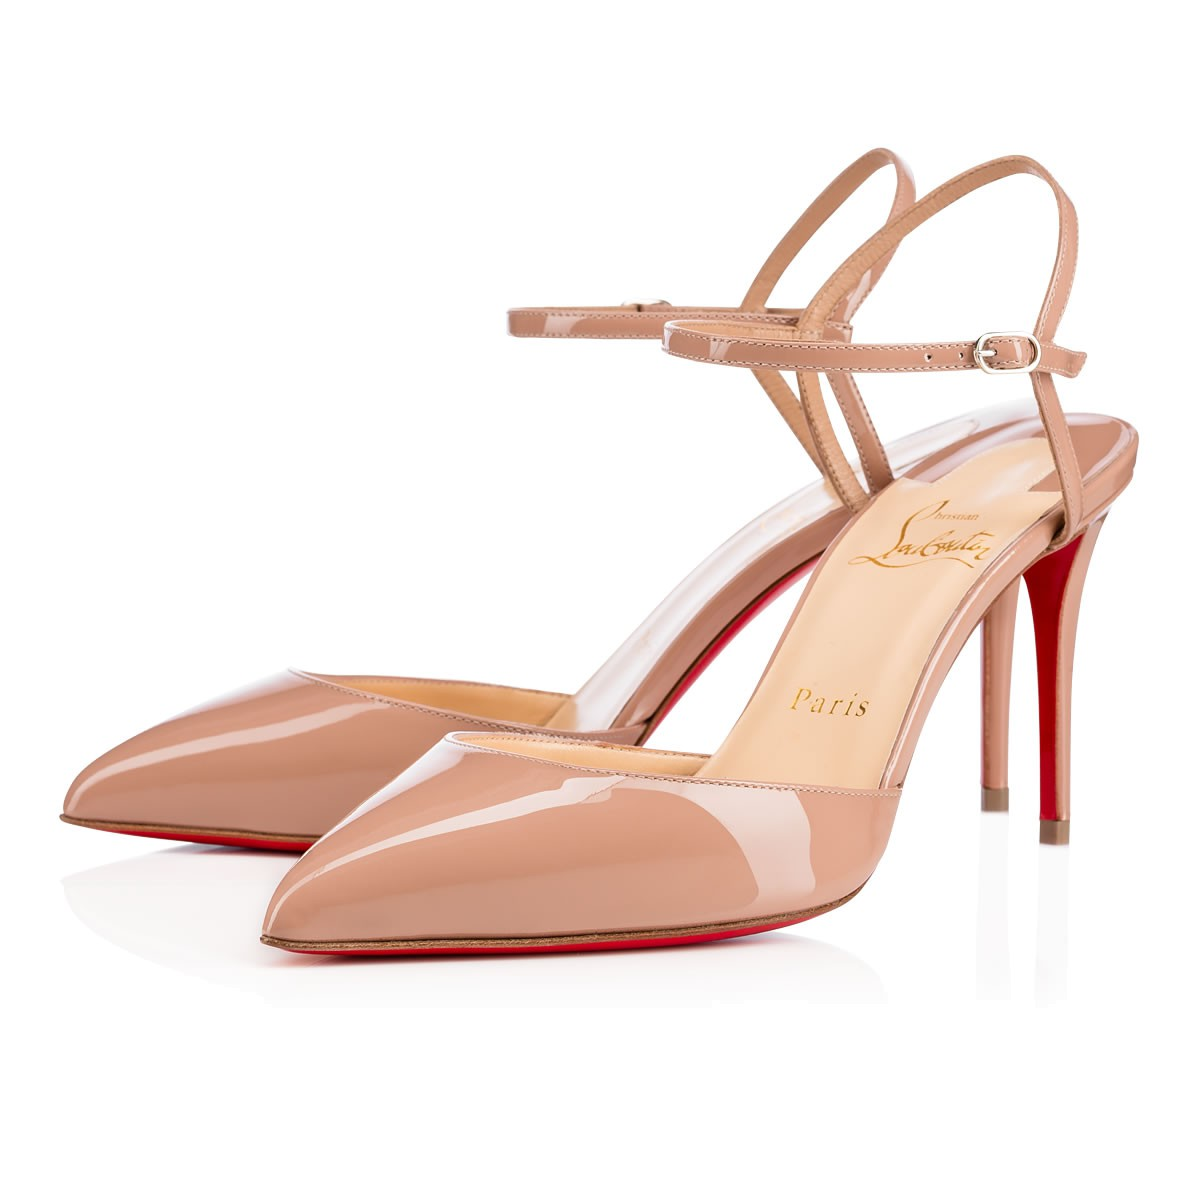 Christian Louboutin Rivierina 85 Pumps Good Selling Free Shipping Wholesale Price For Nice Cheap Online tK7xPKHVVs